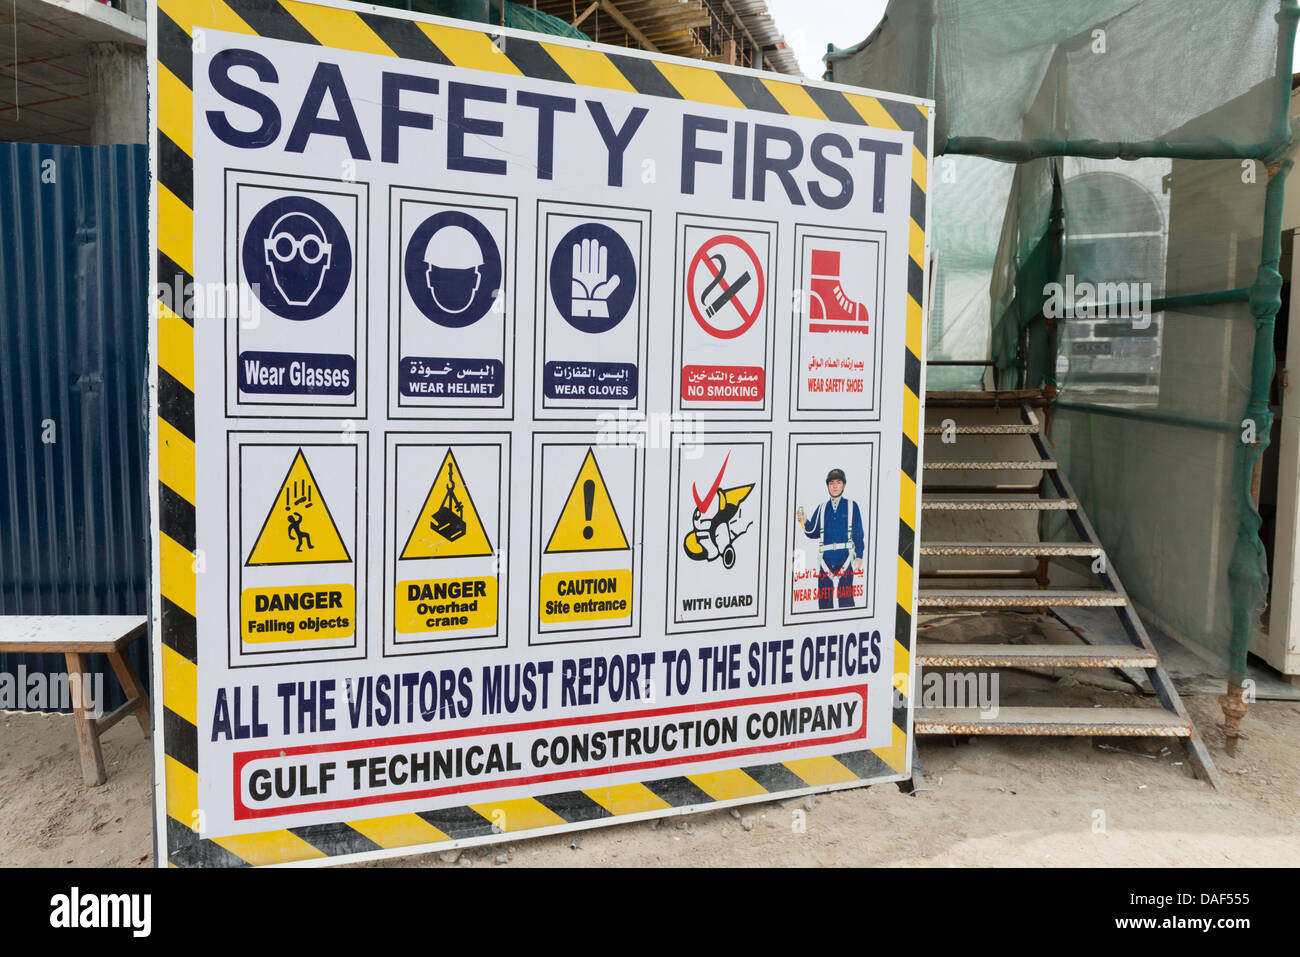 Signboard at construction site in Dubai with safety rules and regulations - Stock Image